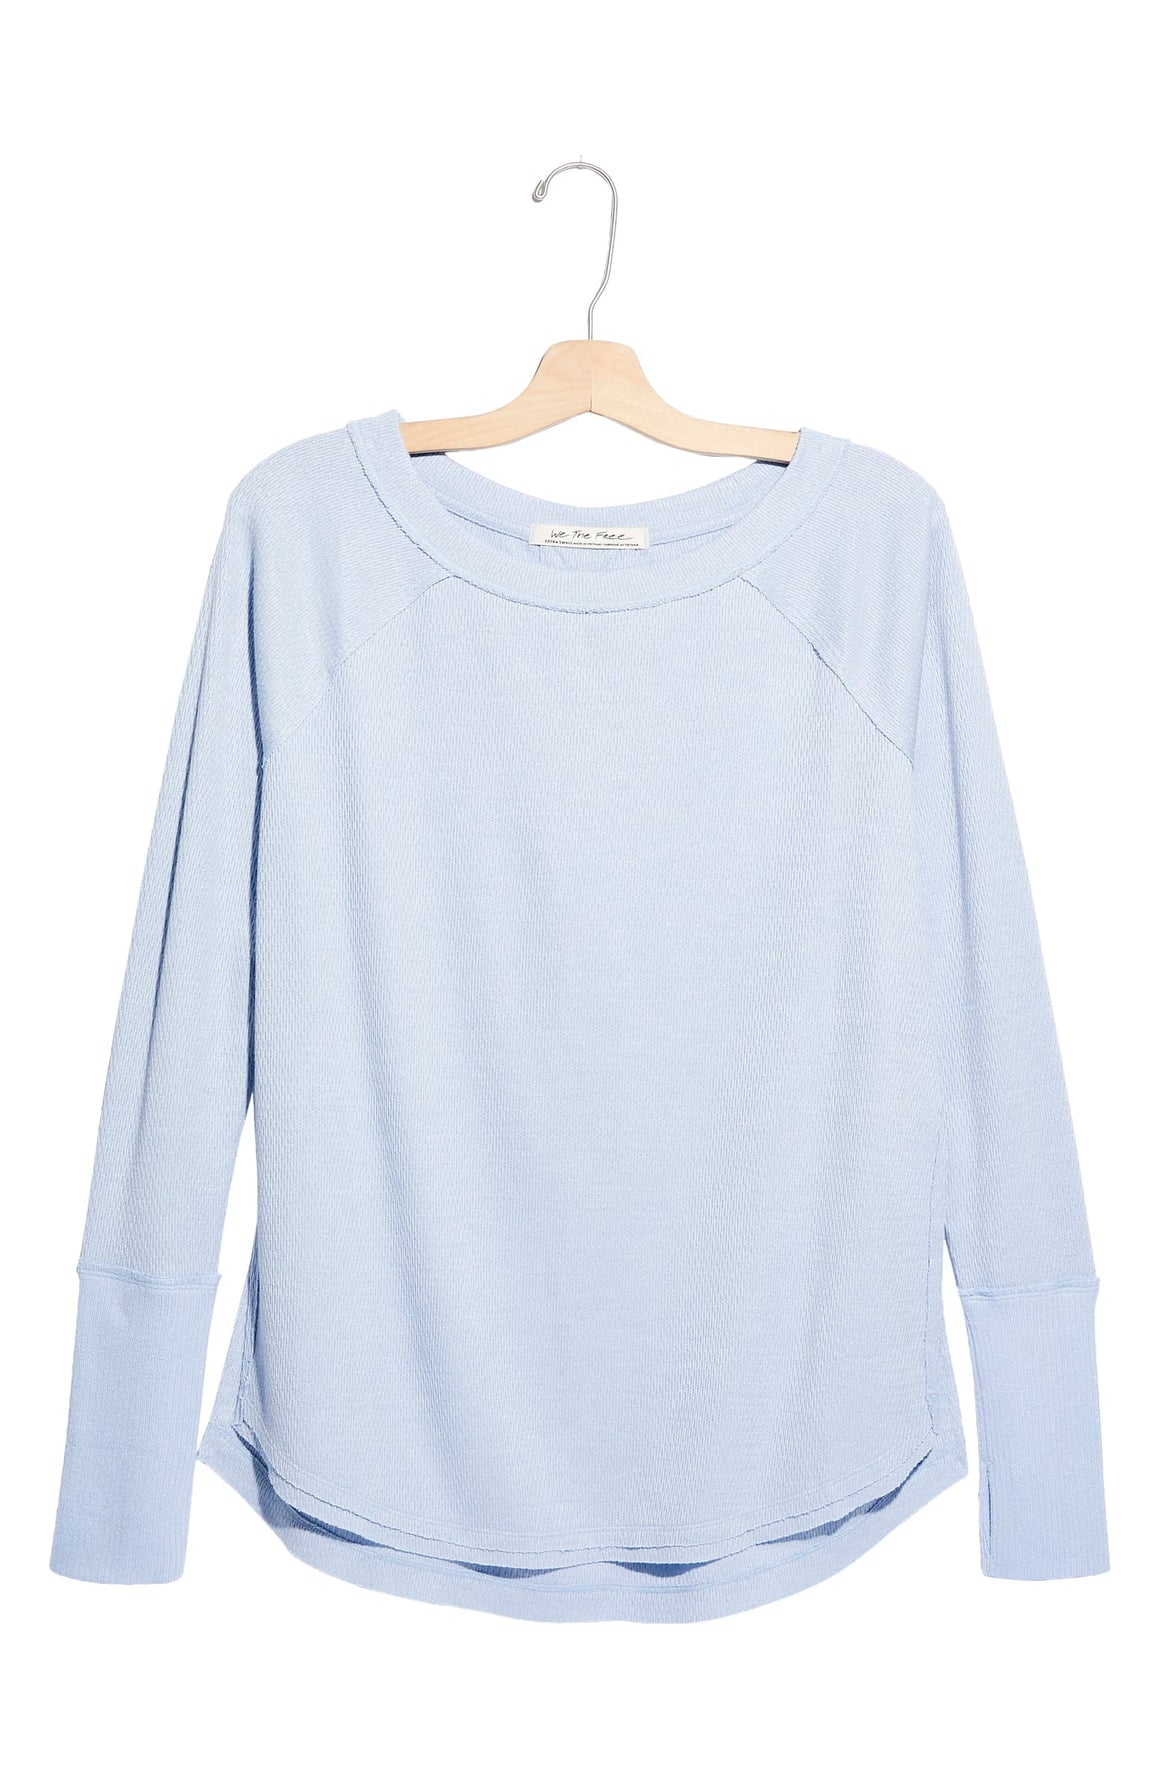 Free People Snowy Thermal